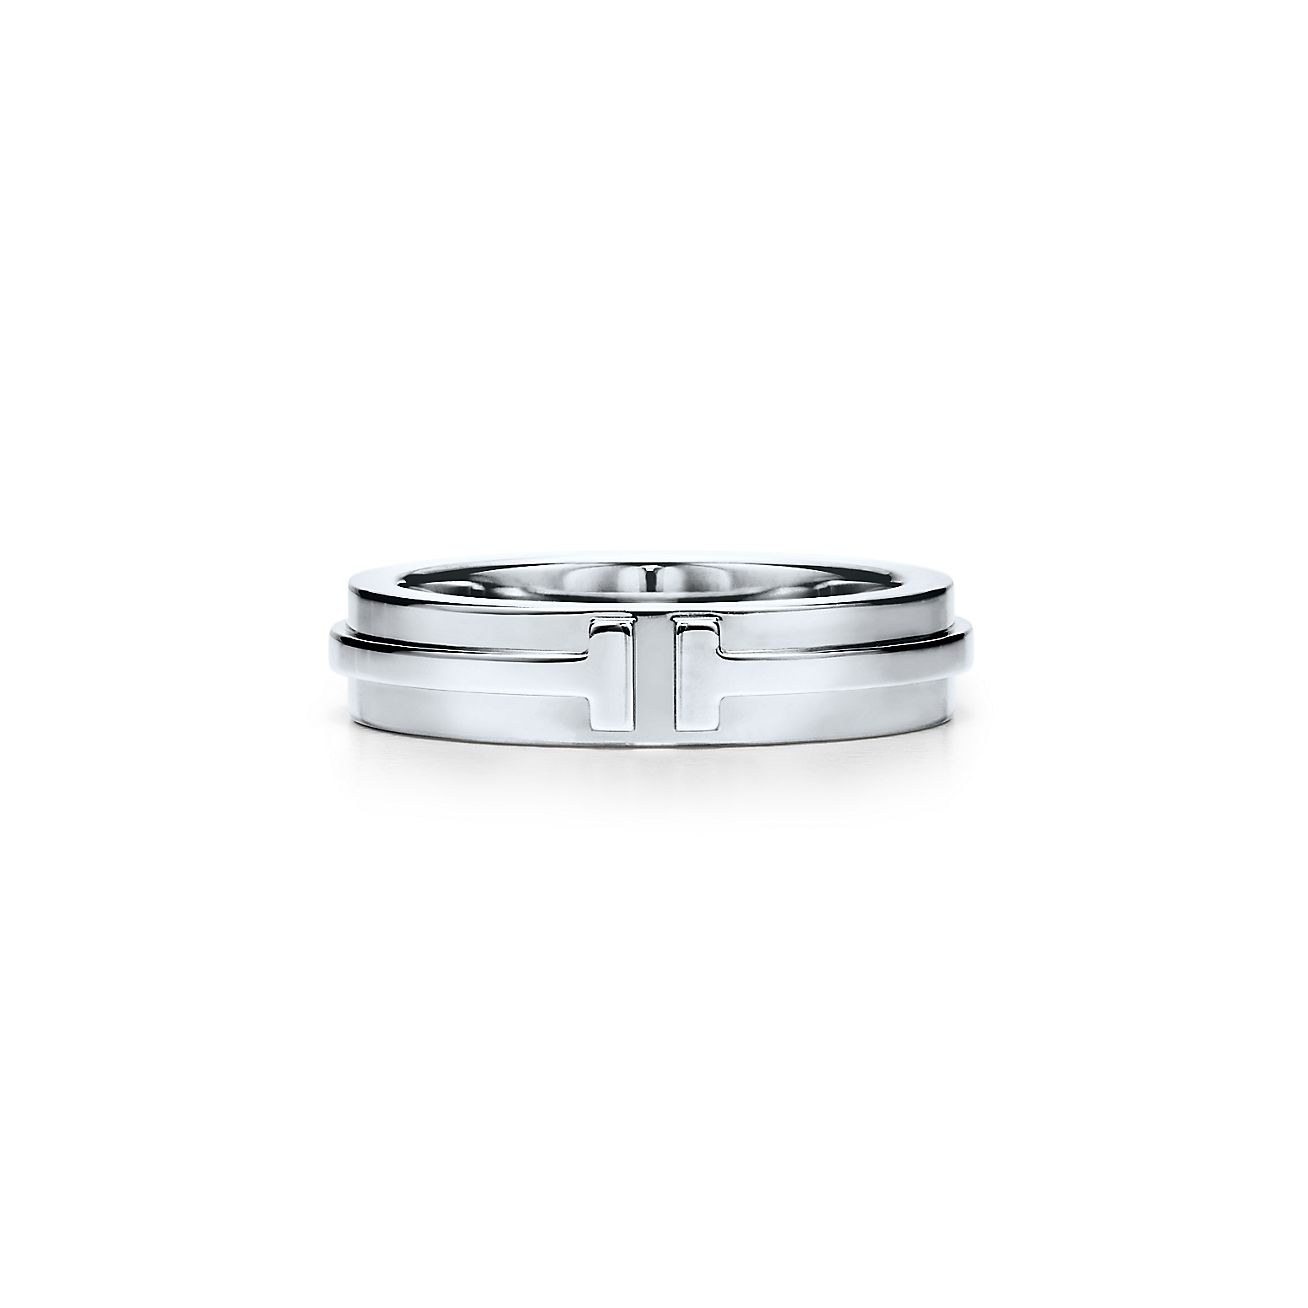 tiffany t two narrow ring in 18k white gold. | tiffany & co.